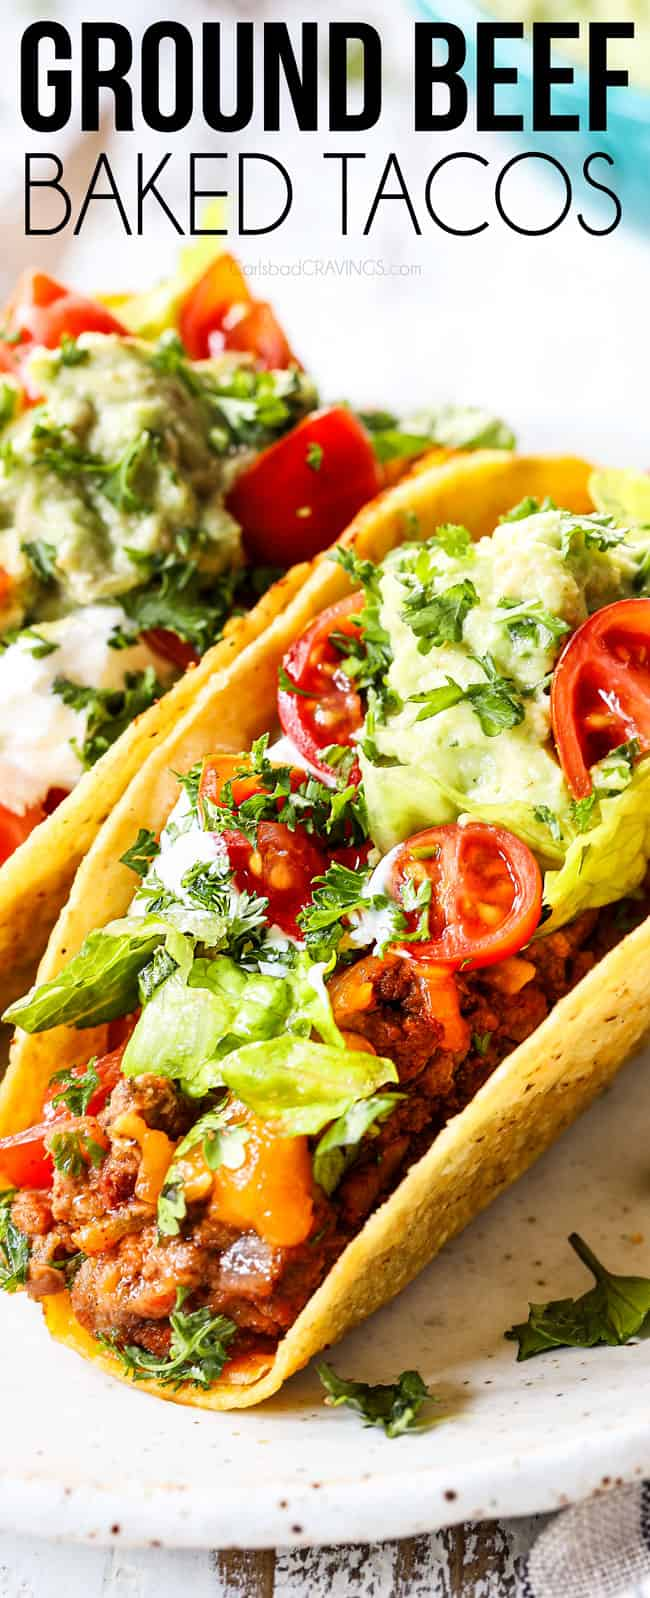 up close showing how to serve ground beef tacos by topping with lettuce, sour cream and tomatoes